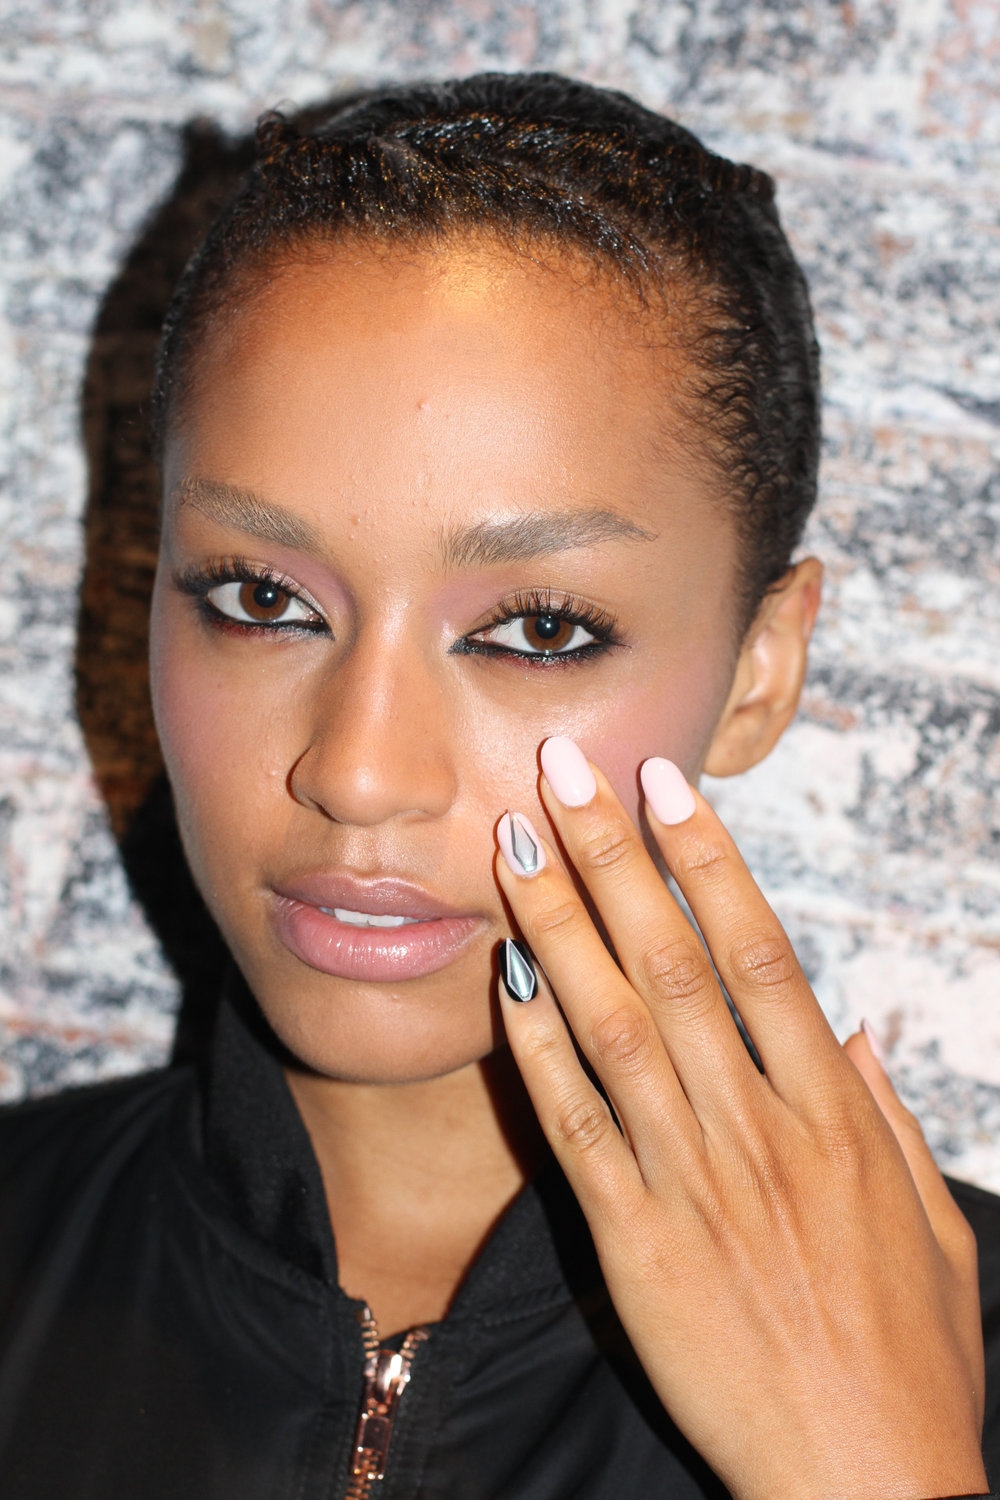 Backstage at  Katie Gallagher #NYFW    Make up by  MAC , nails by  imPRESS     Images c/o Rachel Scroggins ( The Greyest Ghost ) for Cult of Pretty